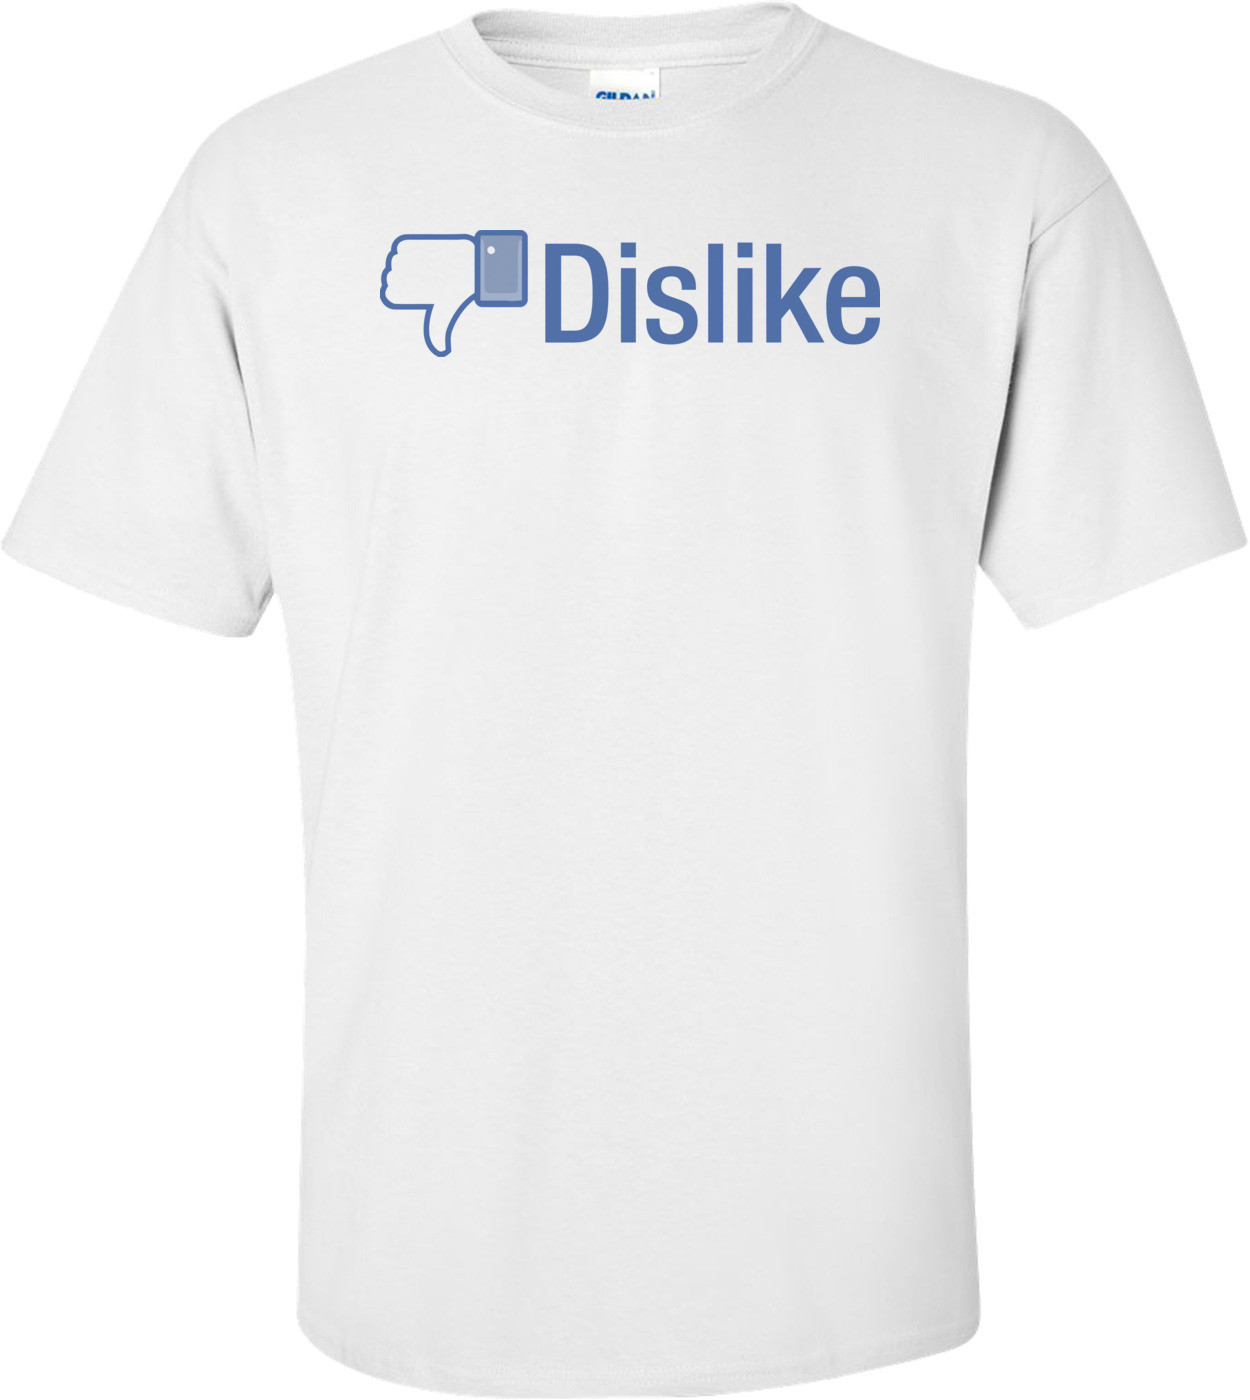 Dislike - Facebook T-shirt